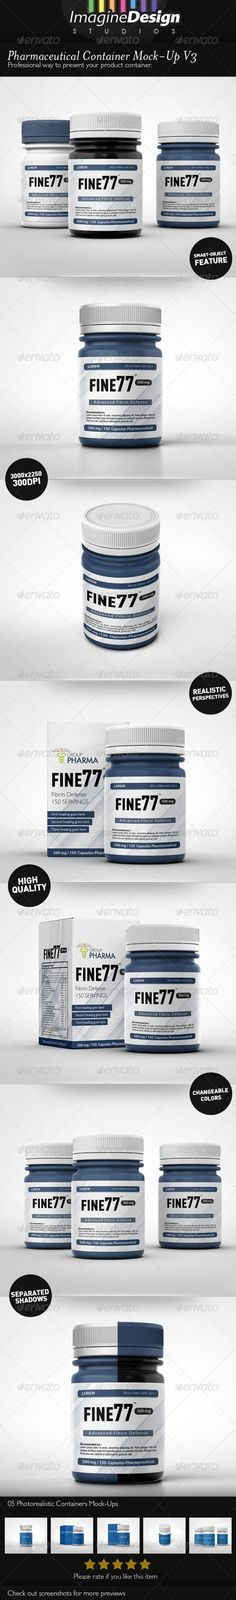 Pharmaceutical Container Mock-Up V3 :  Check out this great #graphicriver item 'Pharmaceutical Container Mock-Up V3' http://graphicriver.net/item/pharmaceutical-container-mockup-v3/6514118?ref=25EGY